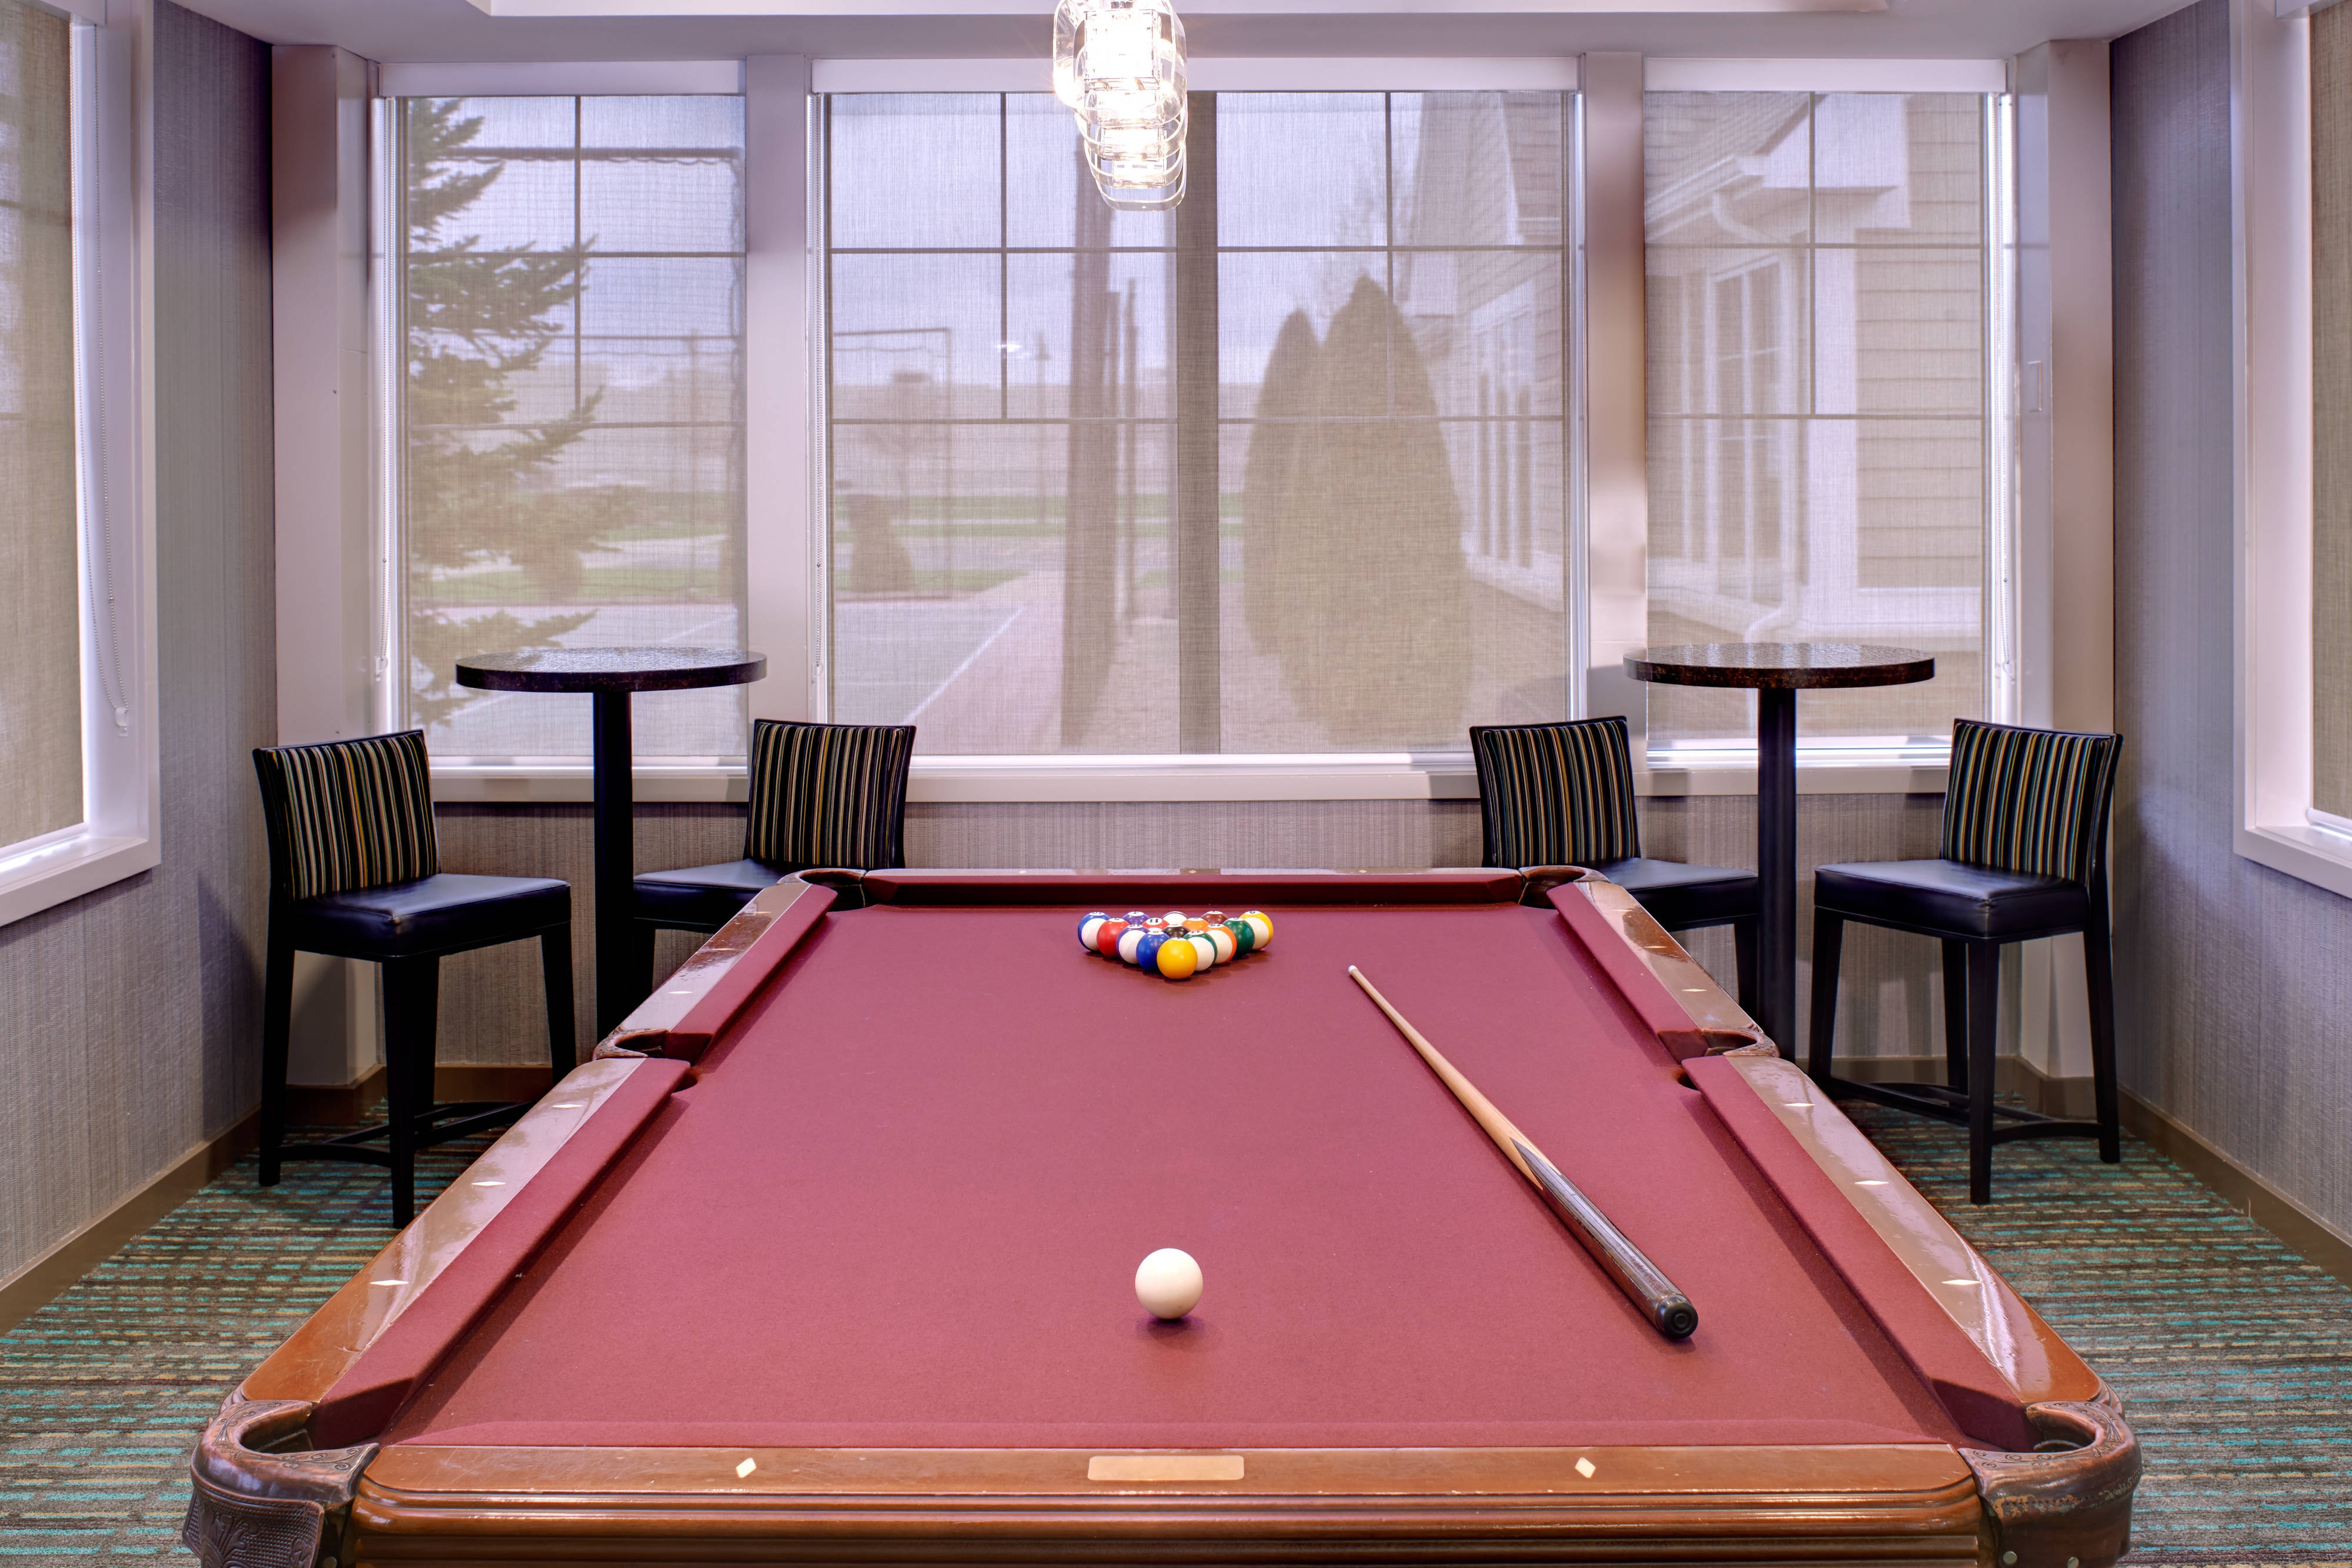 Saginaw hotel with billiards room